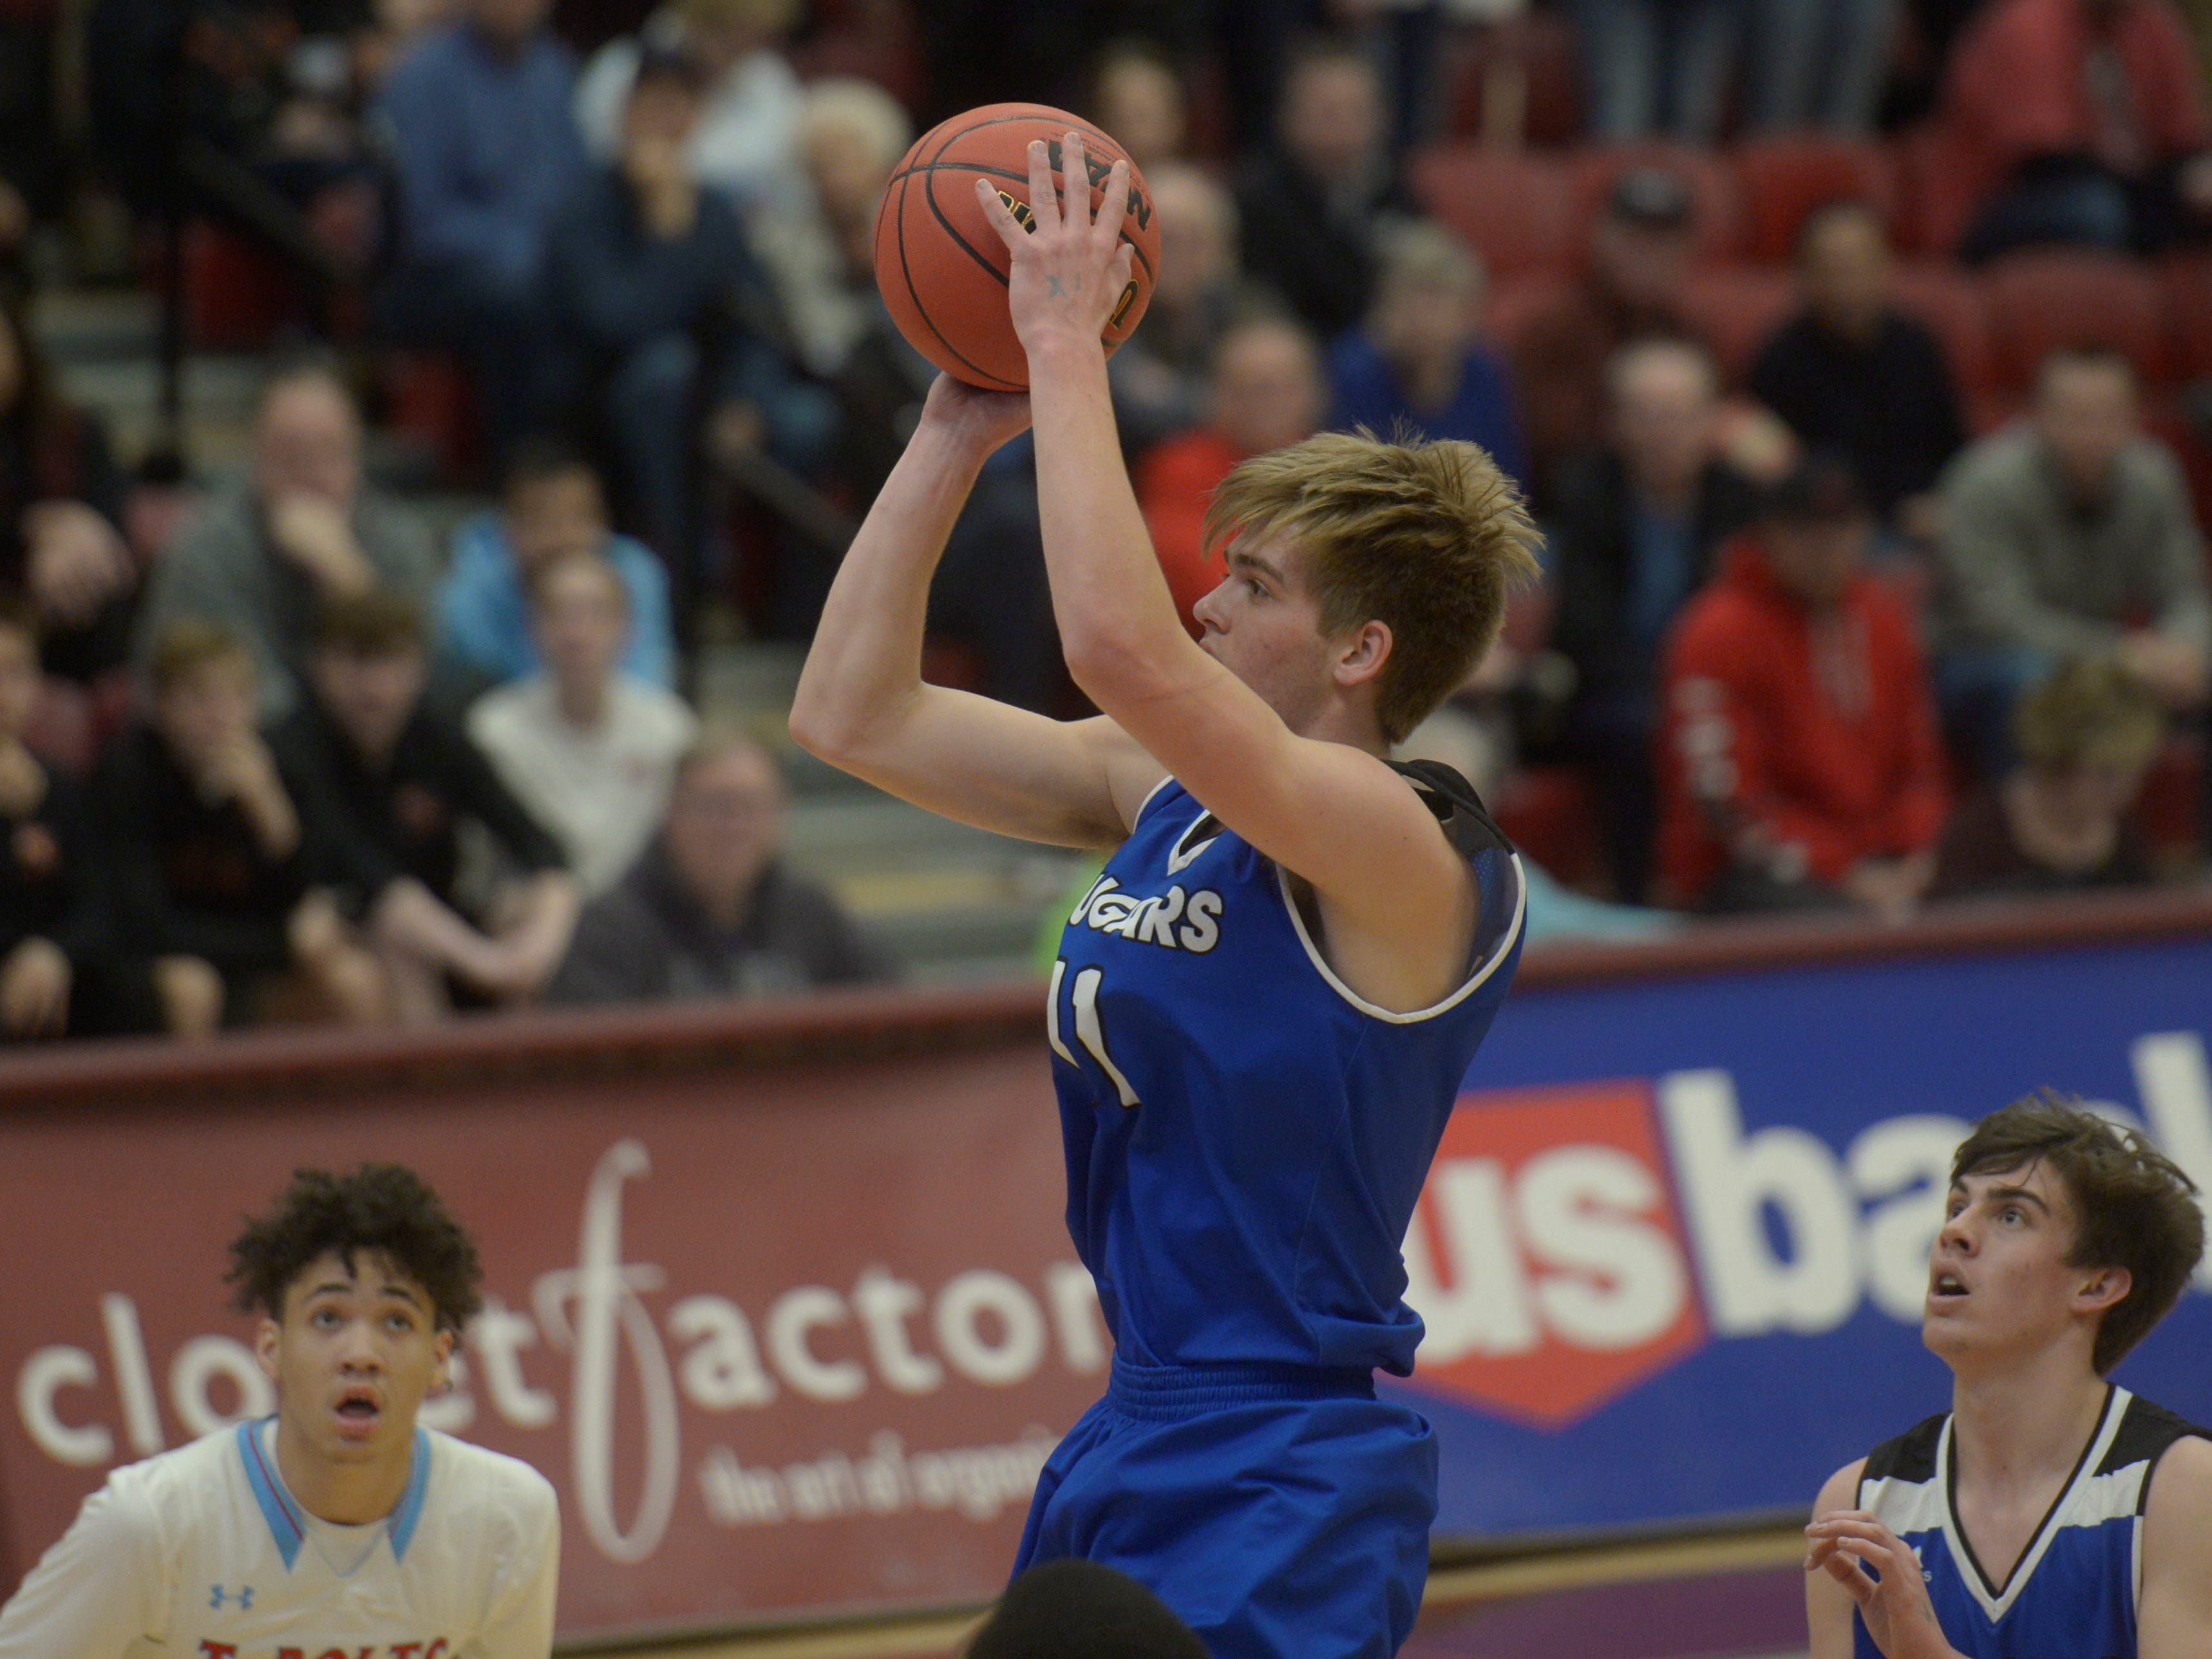 Resurrection Christian basketball forward Reade Lindgren shoots during a Class 3A quarterfinals game against Manual at the University of Denver on Thursday, March 7, 2019.